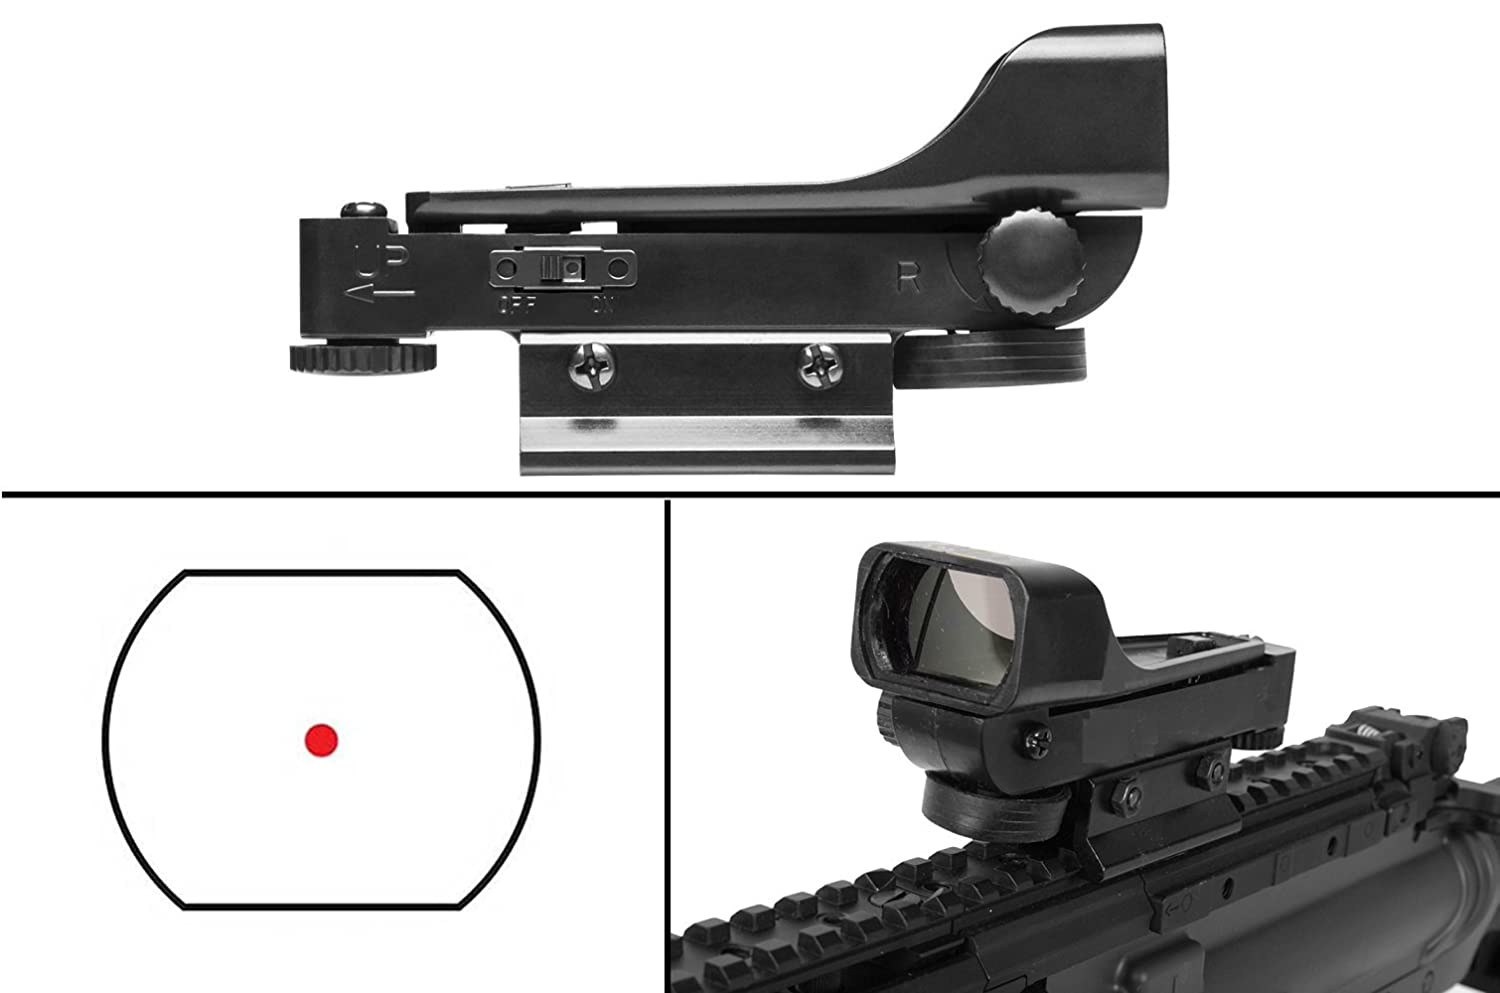 Ultimate Arms Gear Polymer Reticle Red Dot Open Tubeless Reflex Scope Sight Weaver-Picatinny & Dovetail Mount Adapter Rail, Black for Black Ops Tactical Sniper Air Rifle